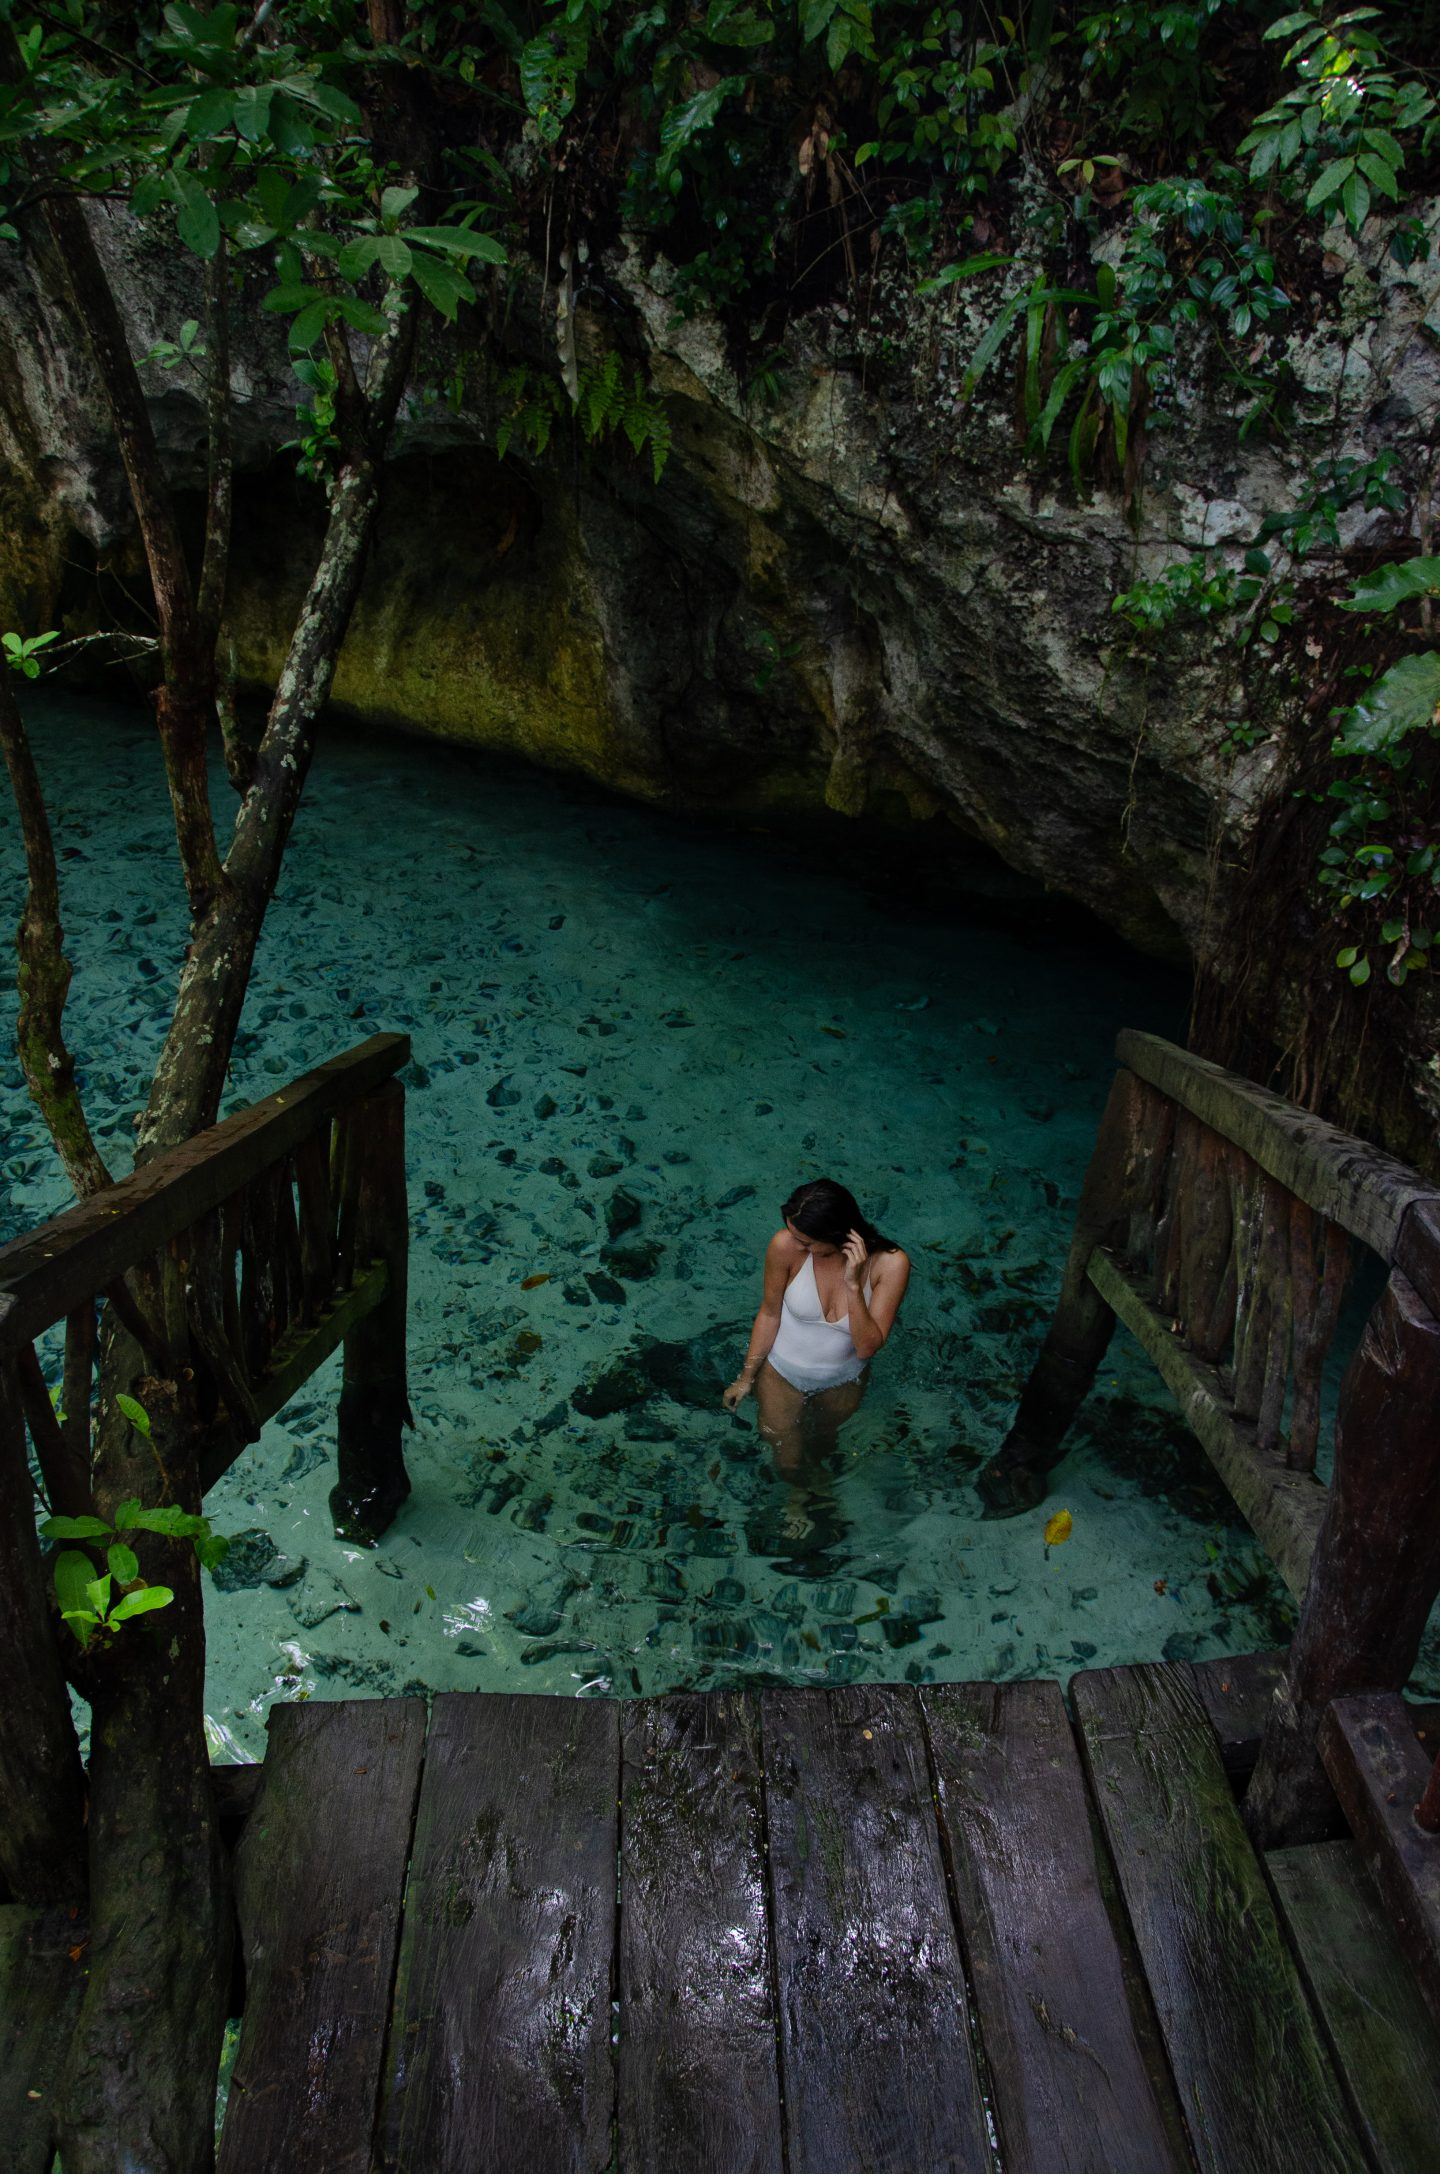 sample image of tulum cenote for lightroom travel presets